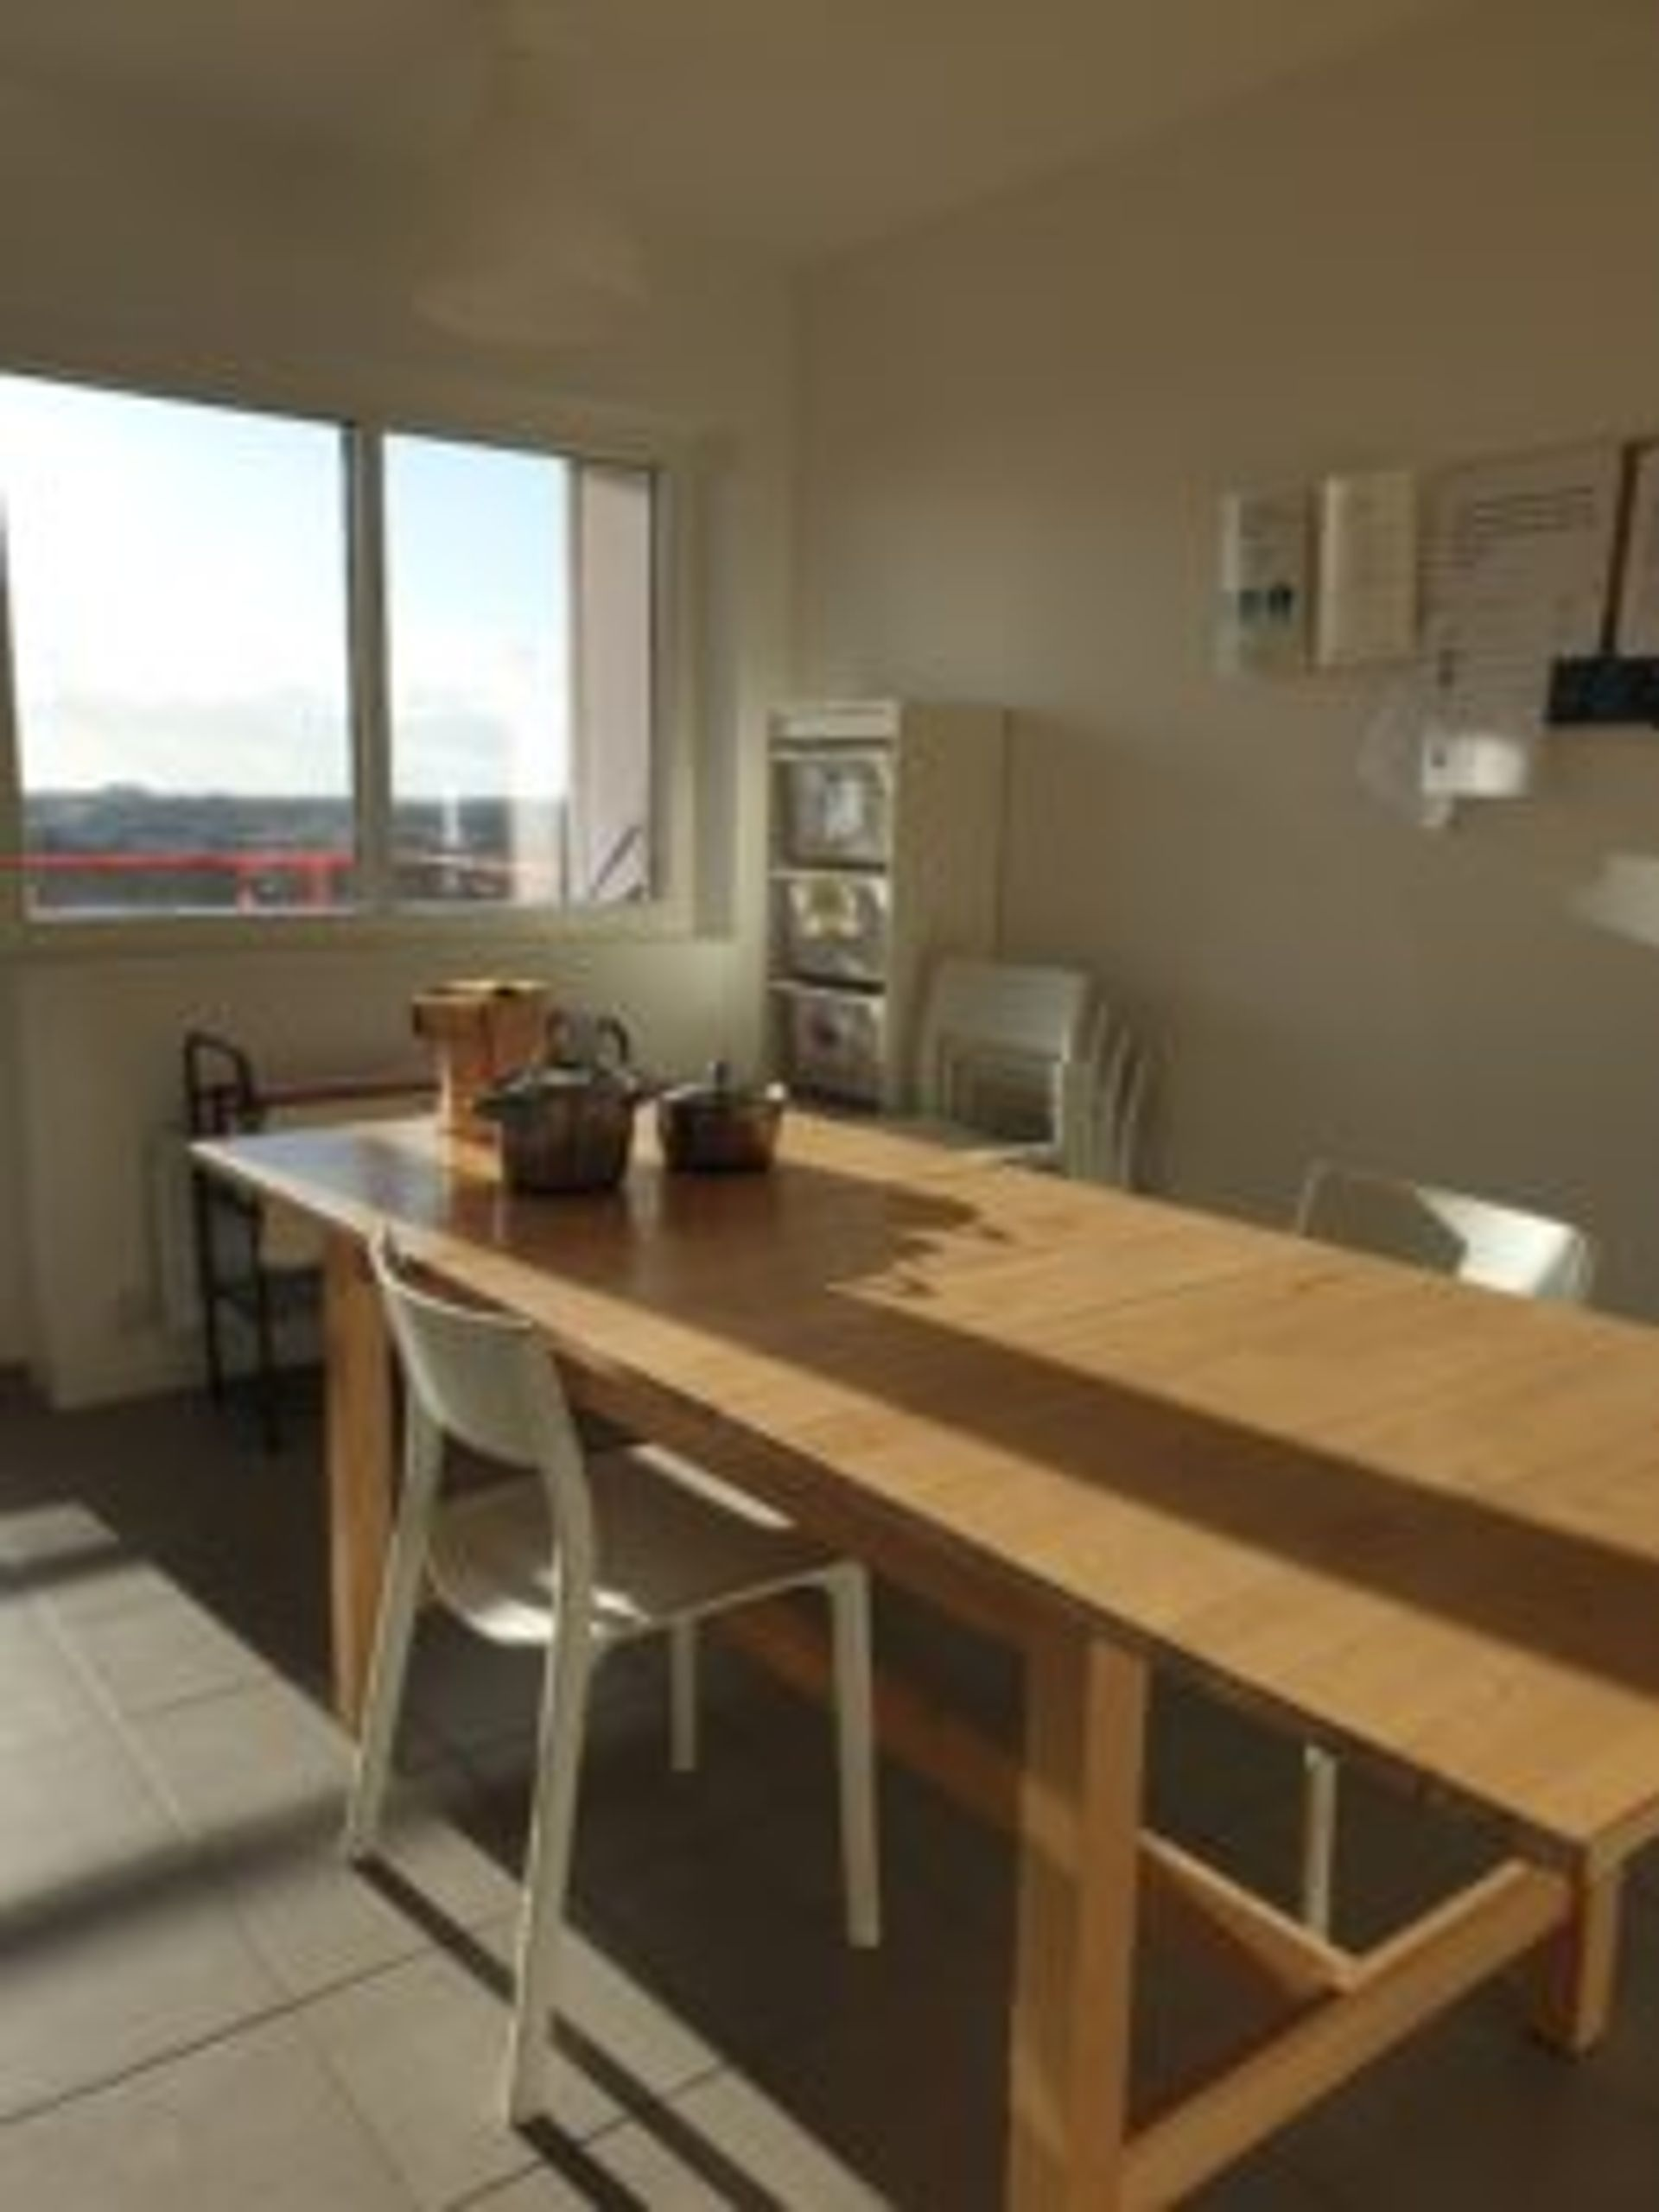 A wooden table and chairs in a shared kitchen.